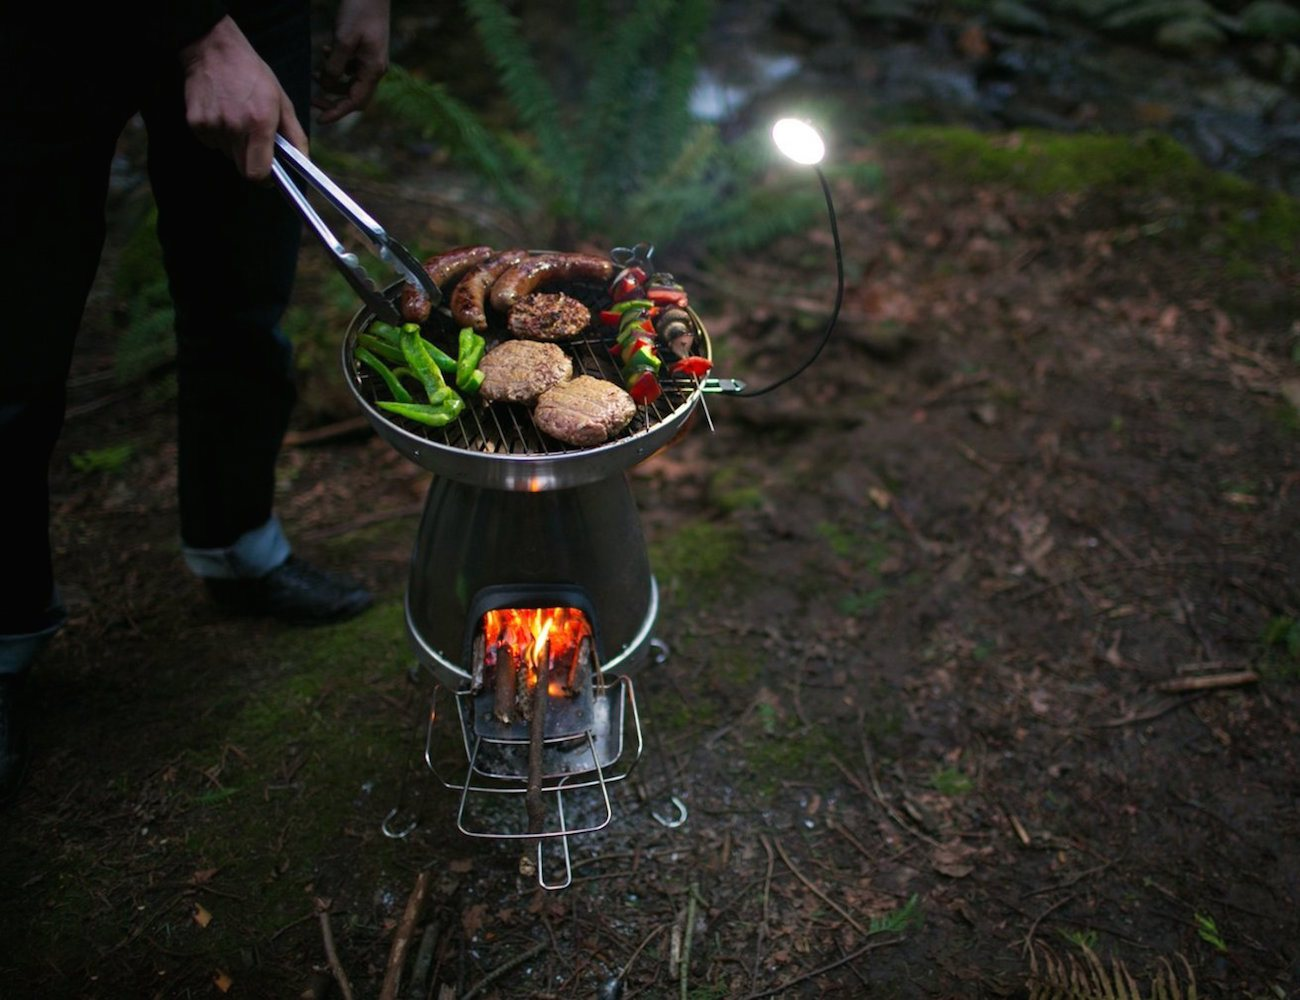 BaseCamp Wood Burning Stove and Grill by BioLite